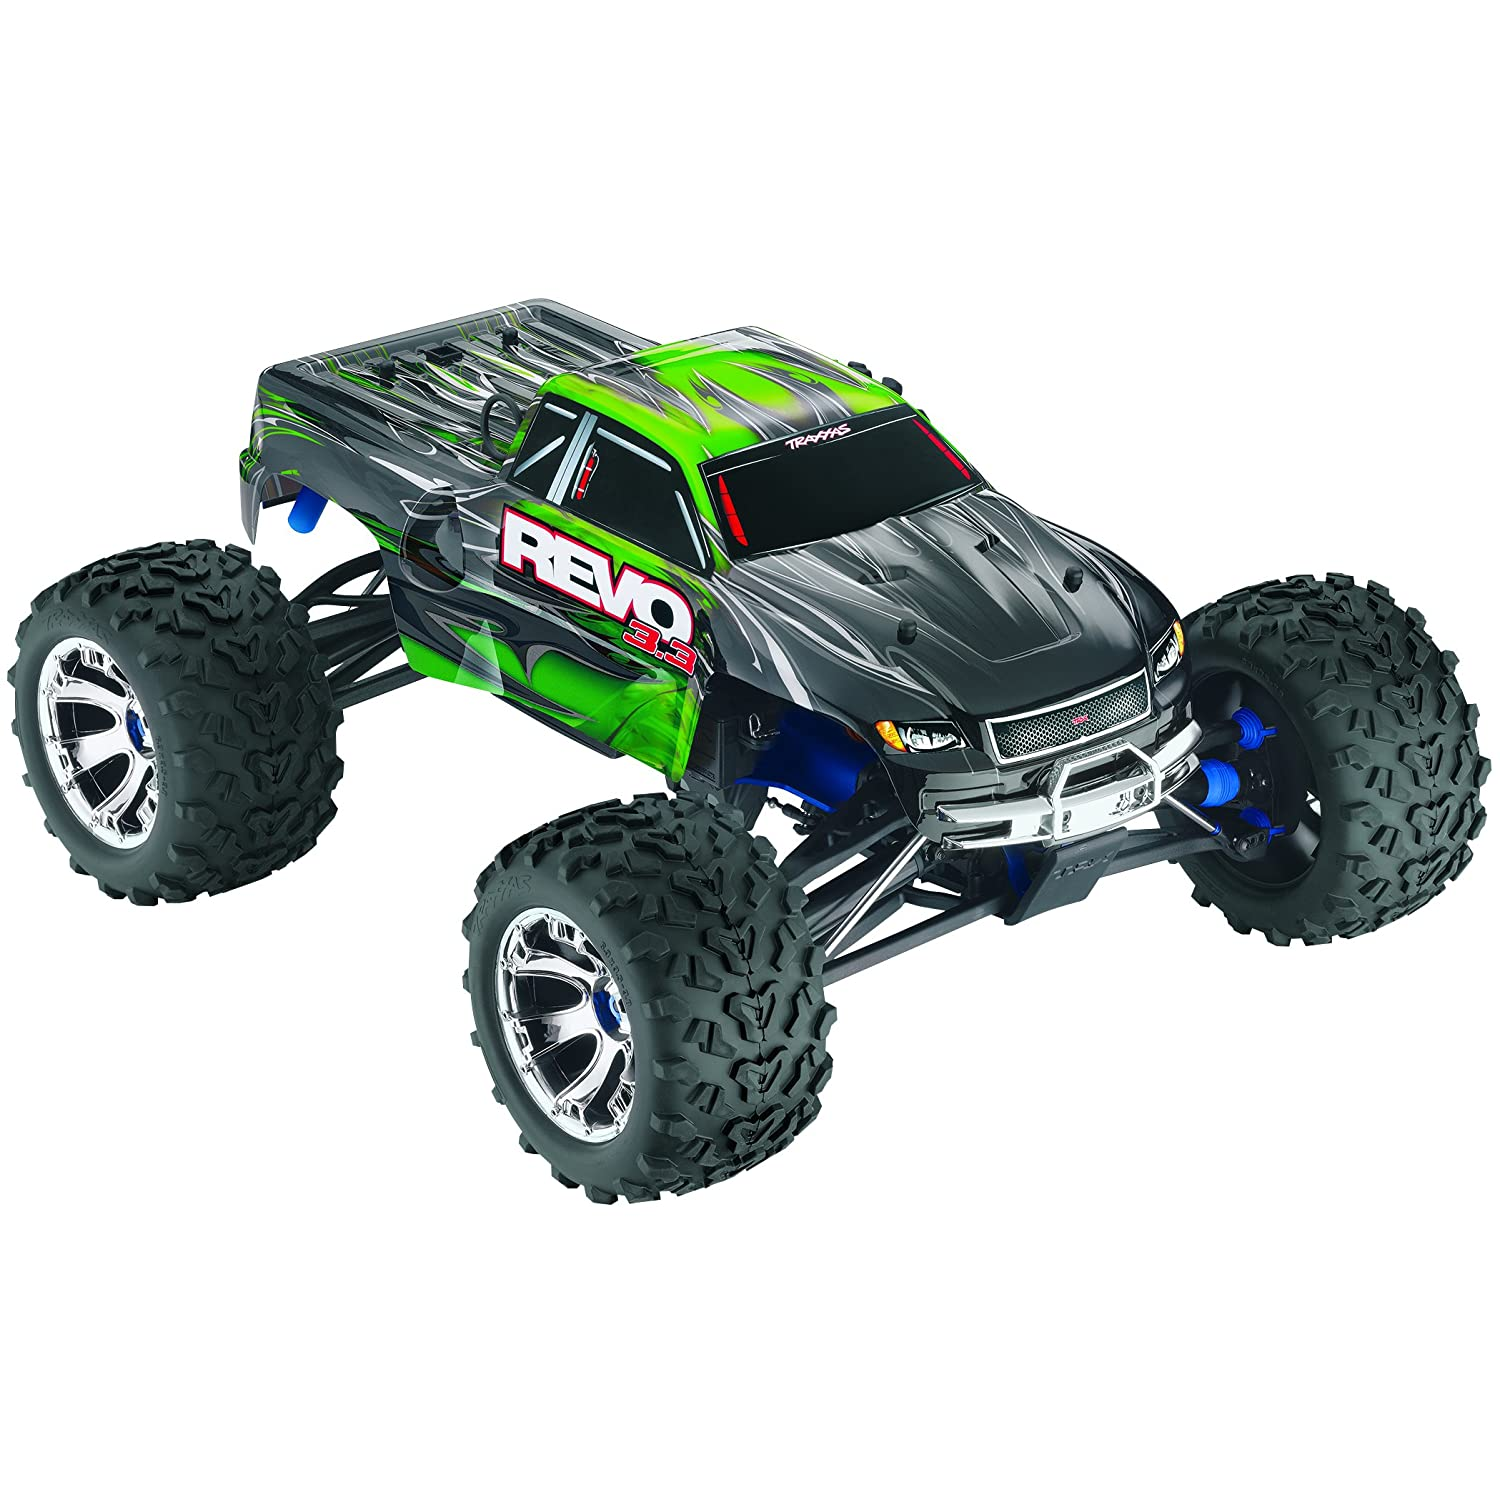 Amazon Traxxas Revo 3 3 4WD Nitro Powered Monster Truck Ready To Race Trucks 1 10 Scale Colors May Vary Toys & Games